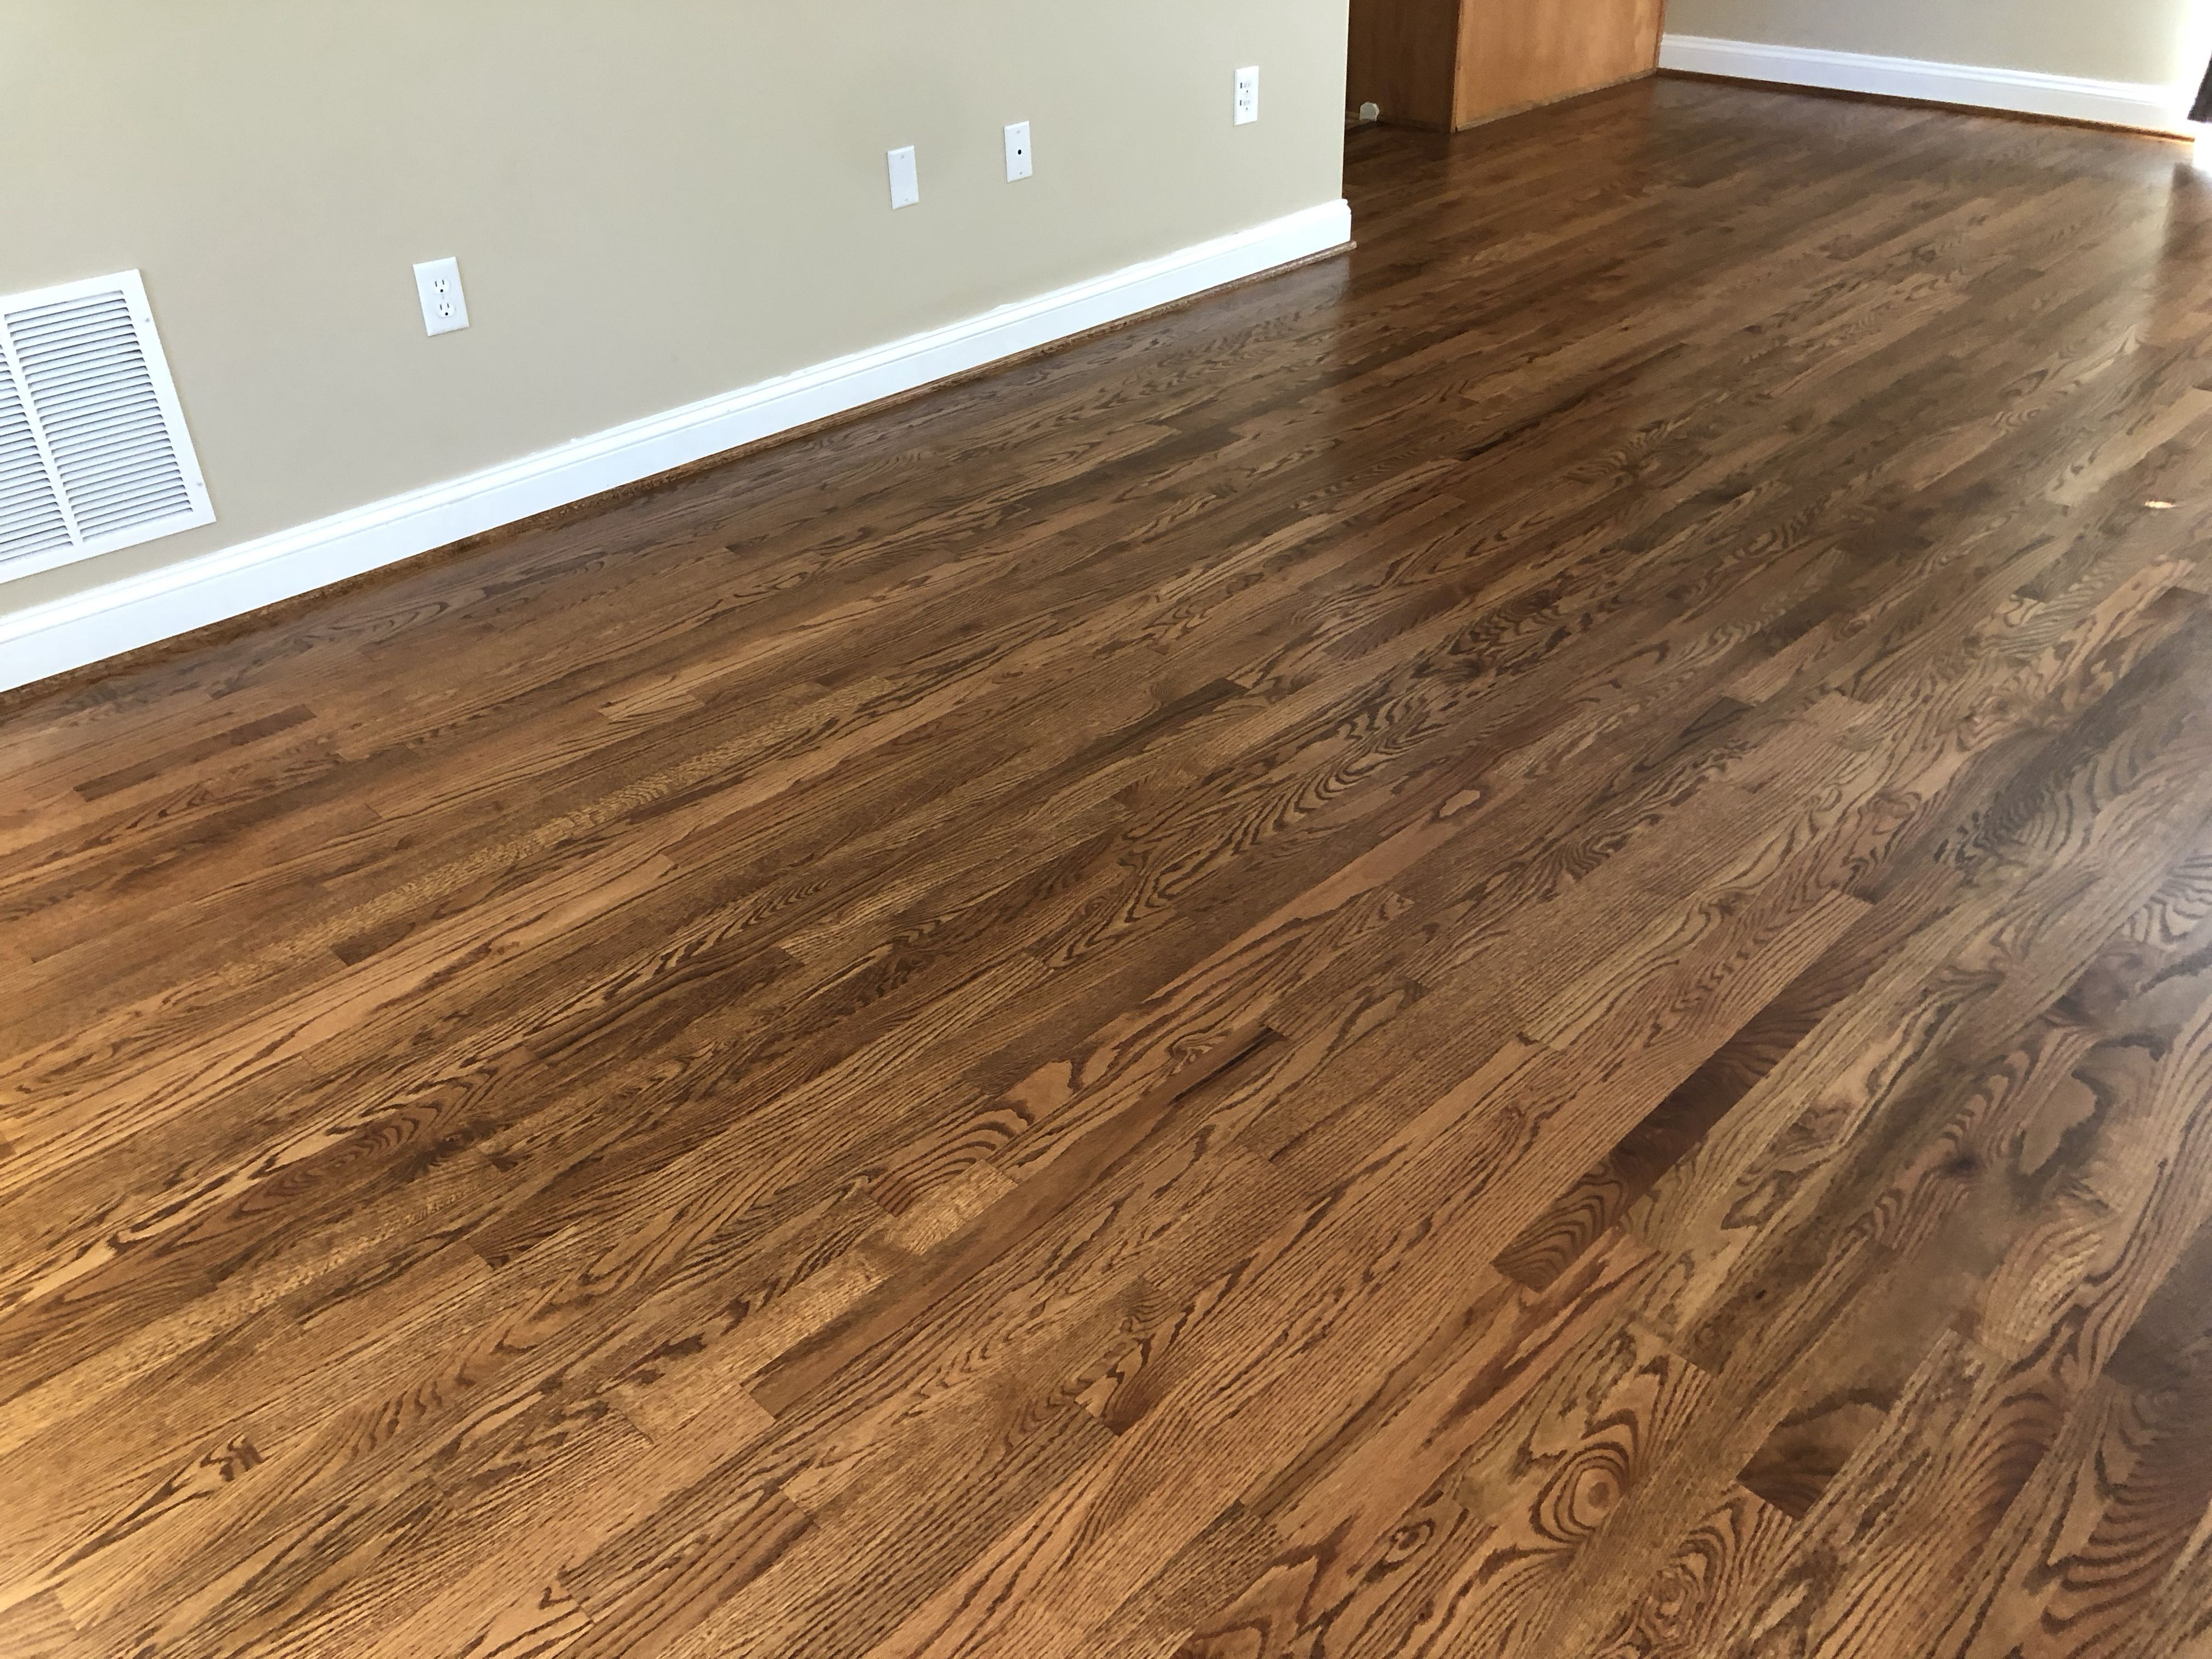 Red Oak Floors Stained With Early American Red Oak Hardwood Floors Red Oak Floors Wood Floor Stain Colors